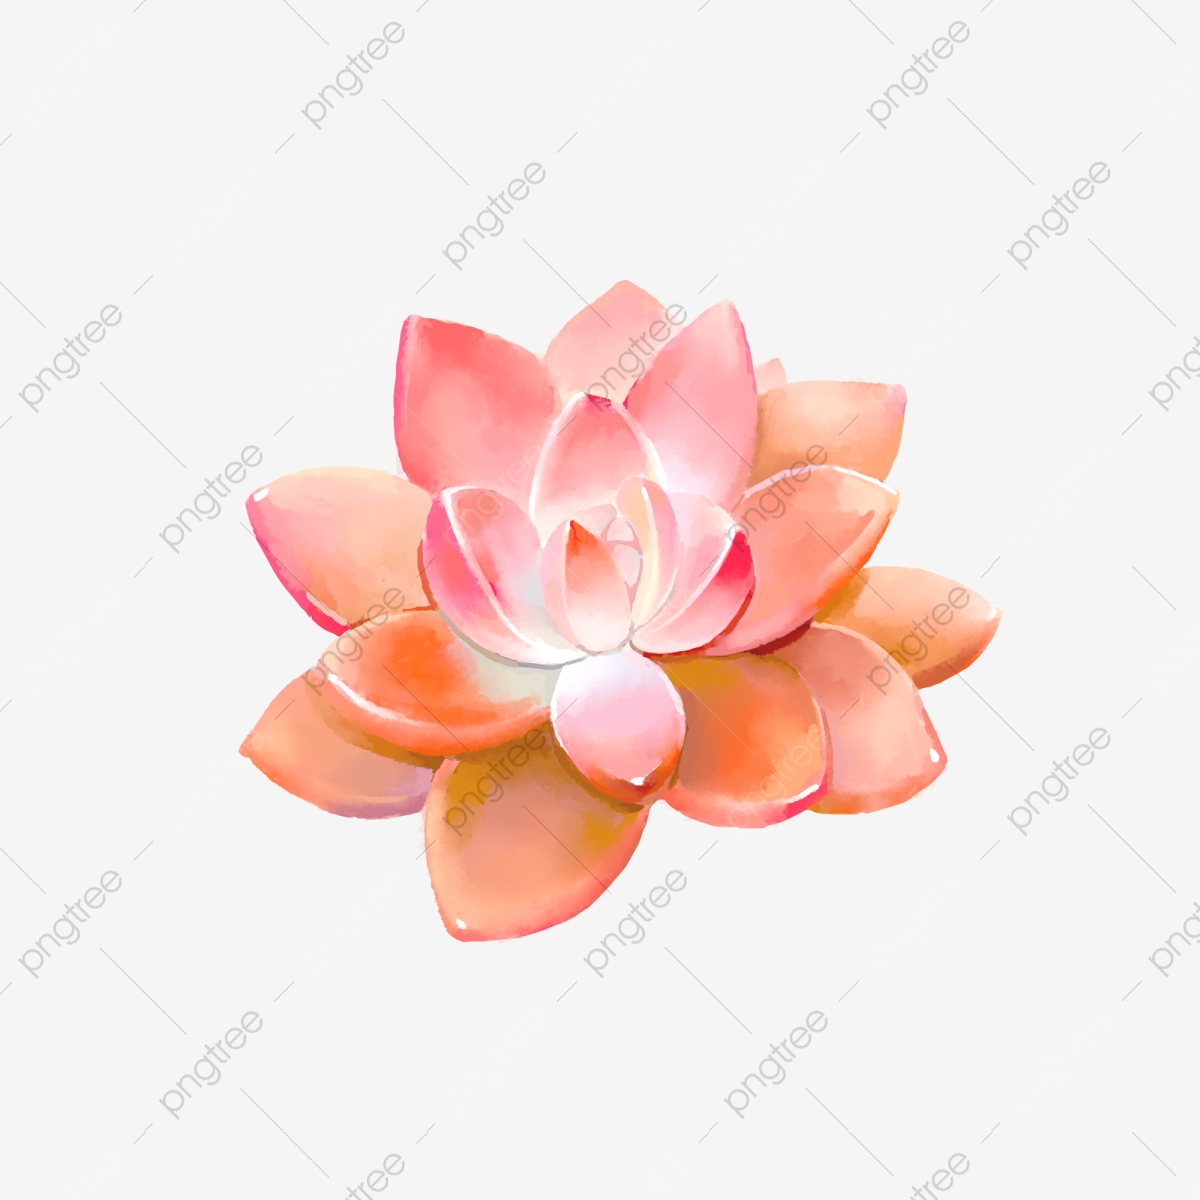 Watercolor Succulent Png Vector Psd And Clipart With Transparent Background For Free Download Pngtree